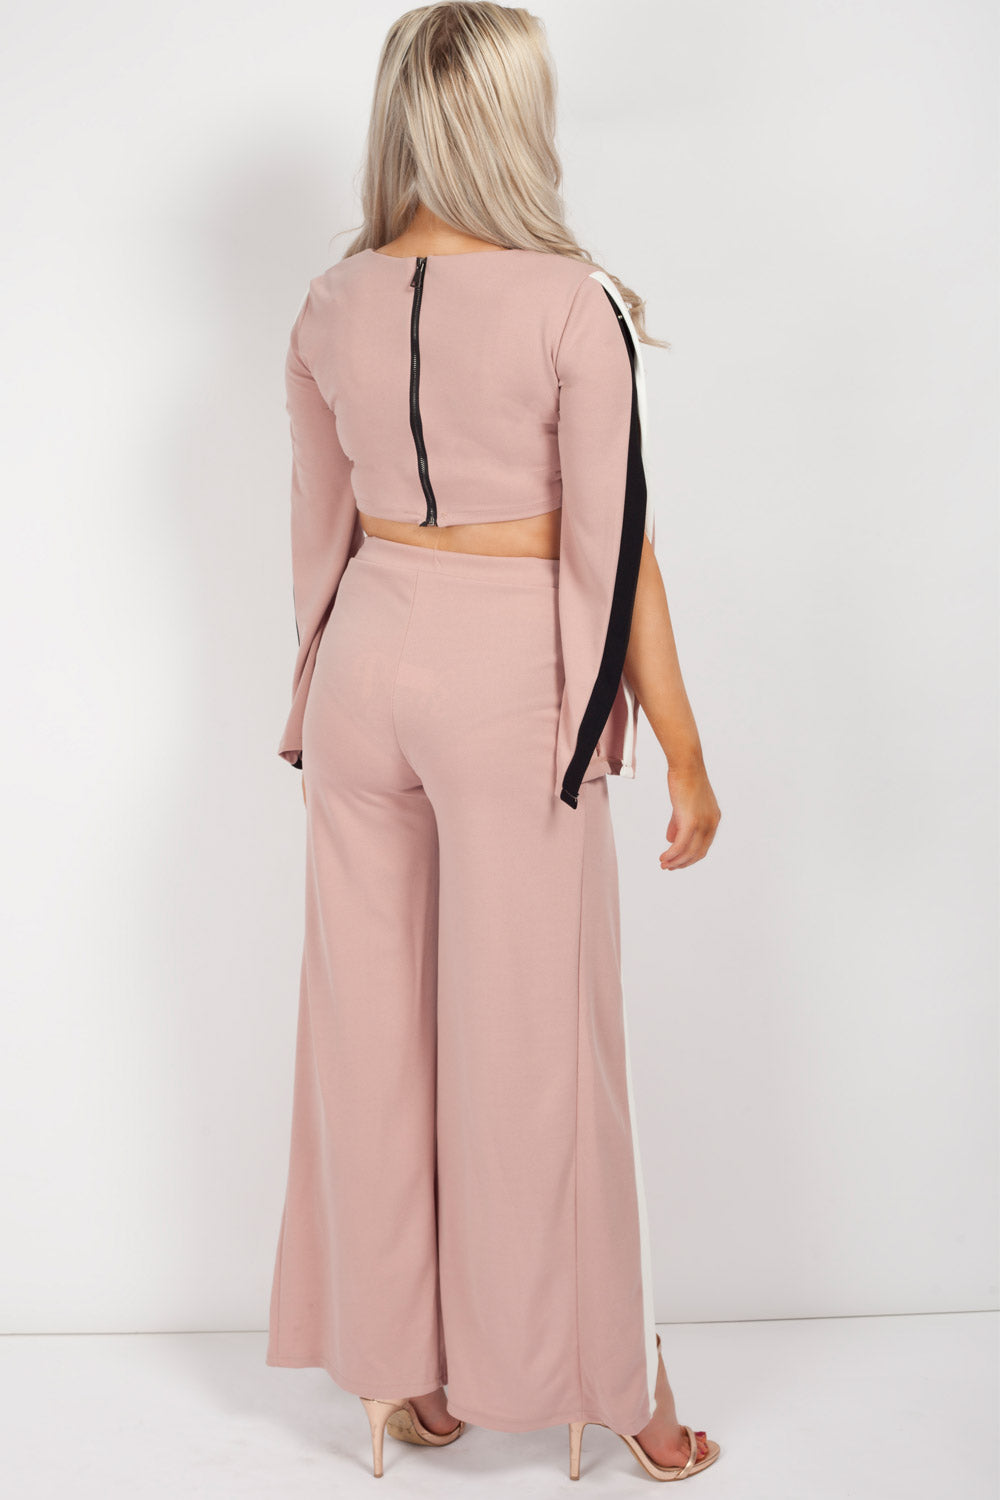 trousers and crop top set pink